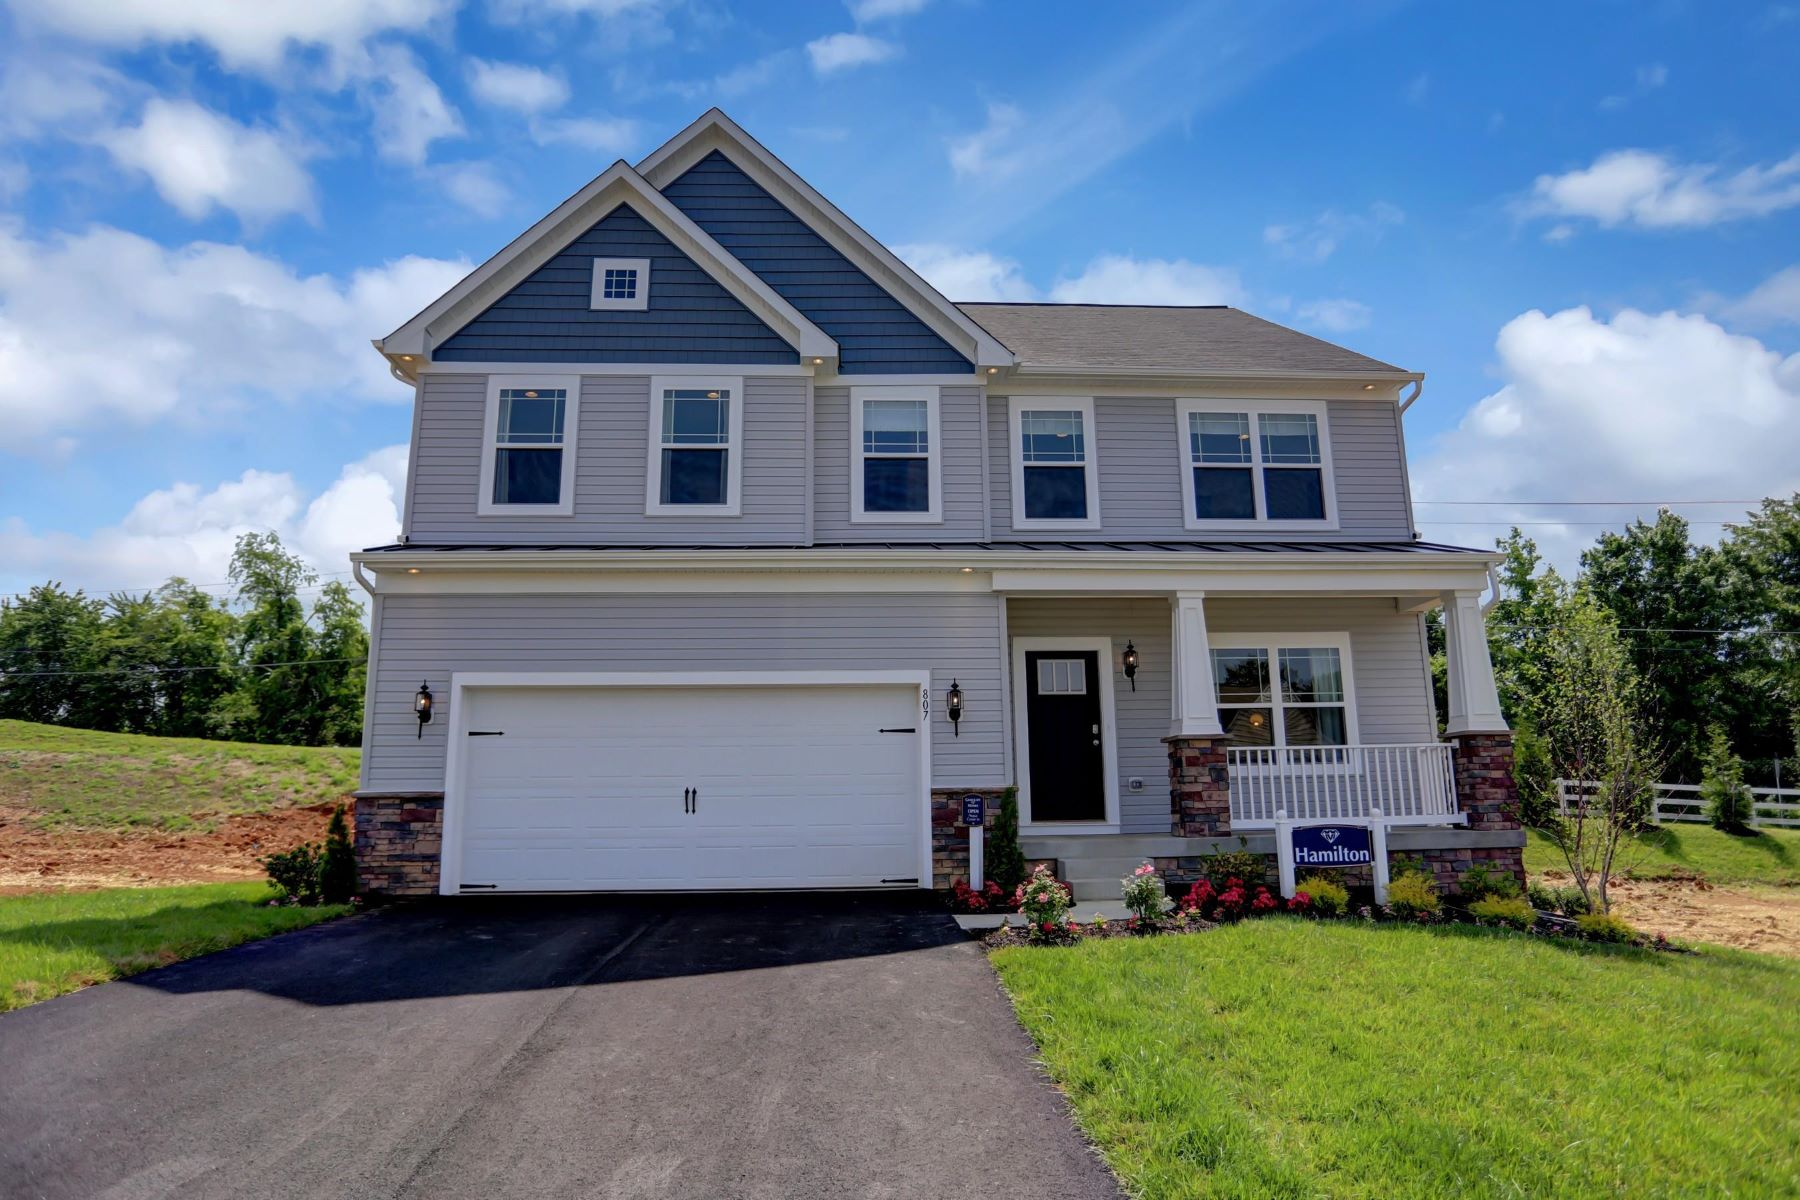 Single Family Homes for Sale at Fawn Grove Hamilton New Construction 0-B Morris Road, Fawn Grove, Pennsylvania 17321 United States